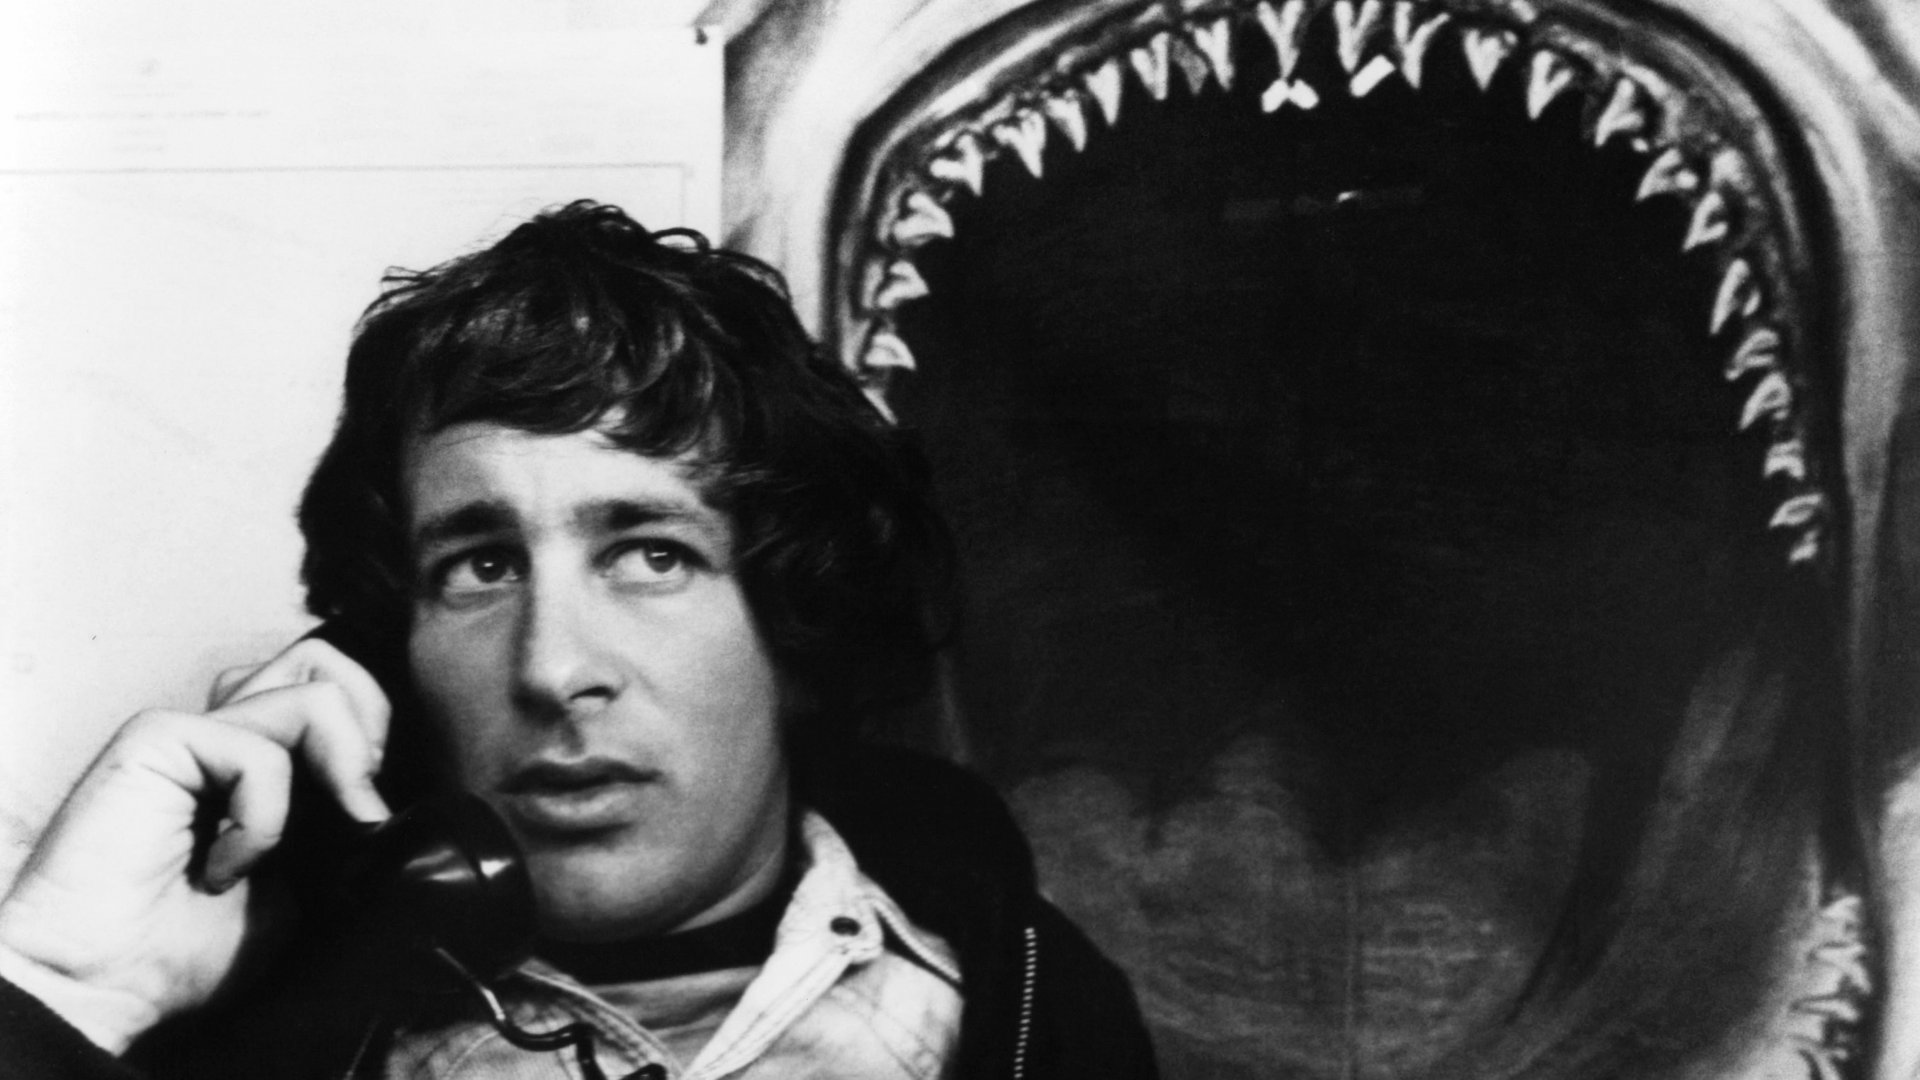 Steven Spielberg's Making of 'Jaws' Provides a Master Class in Effective (and Visionary) Leadership